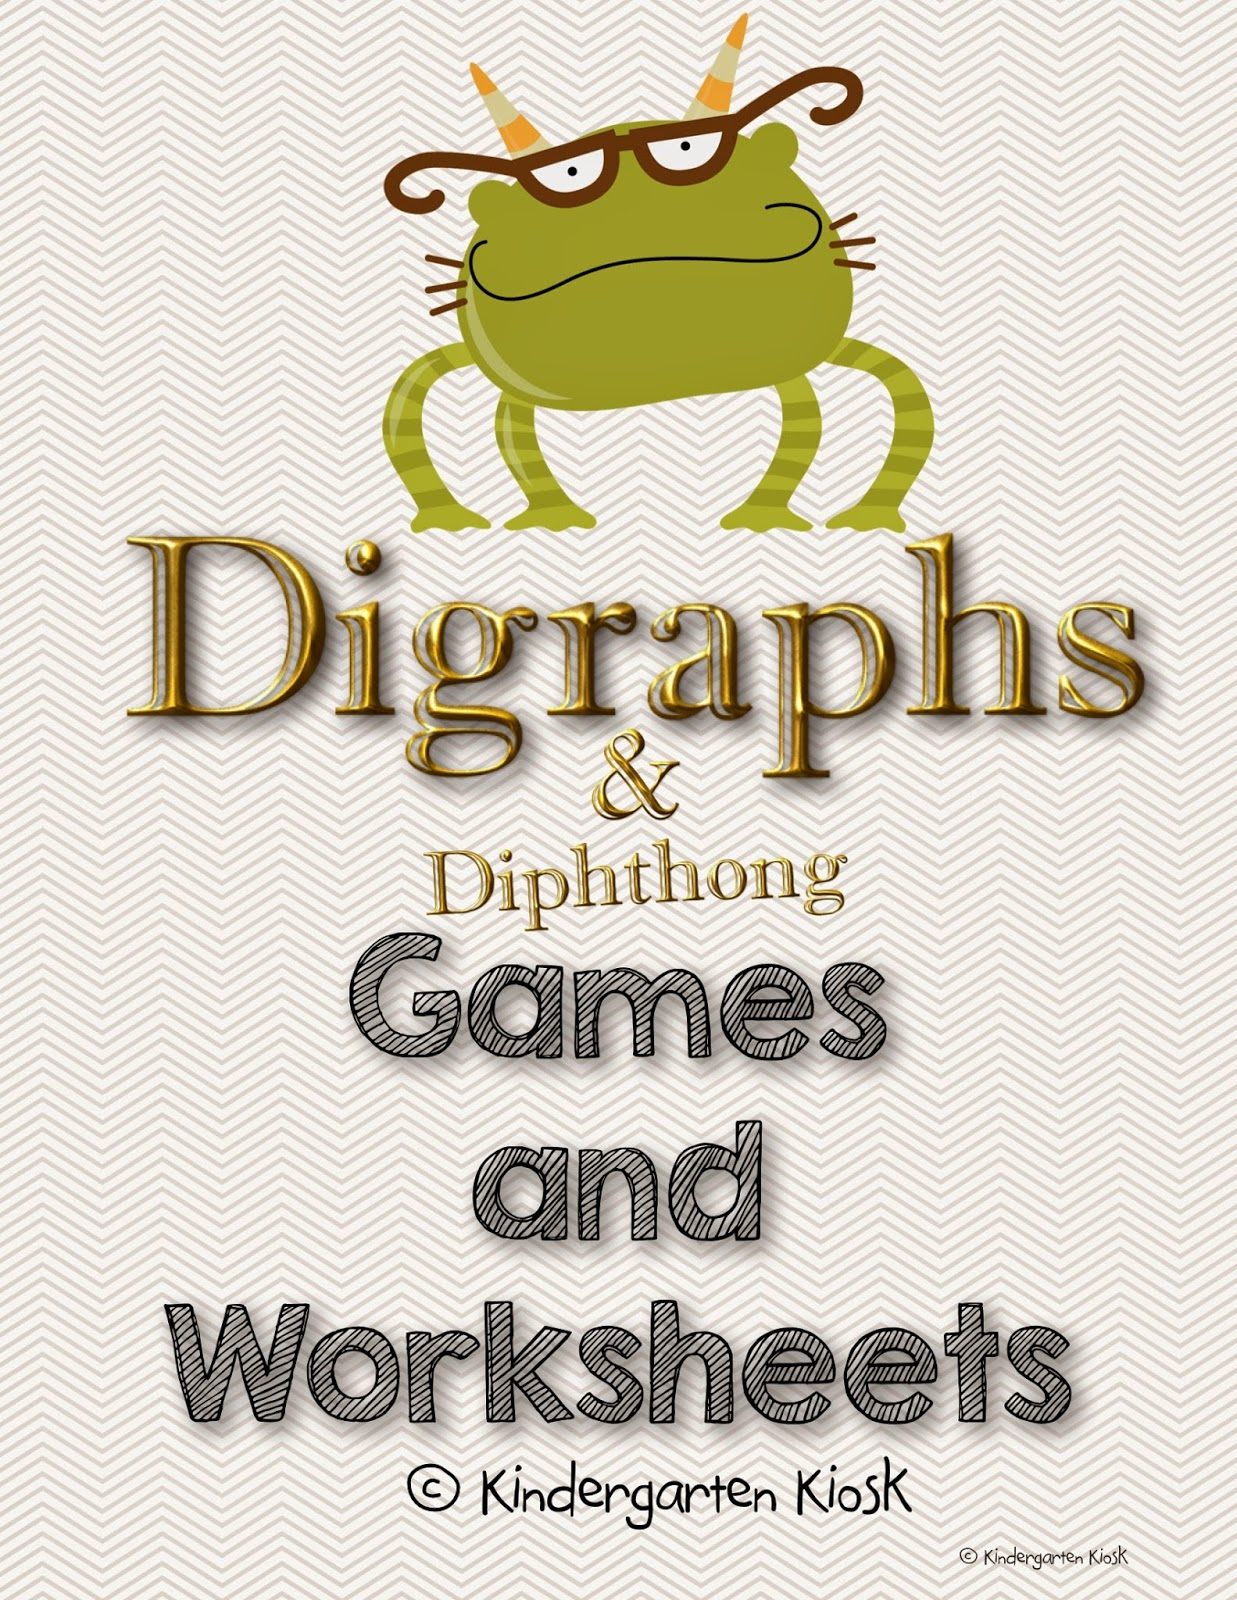 Kindergarten Kiosk Digraphs And Diphthongs